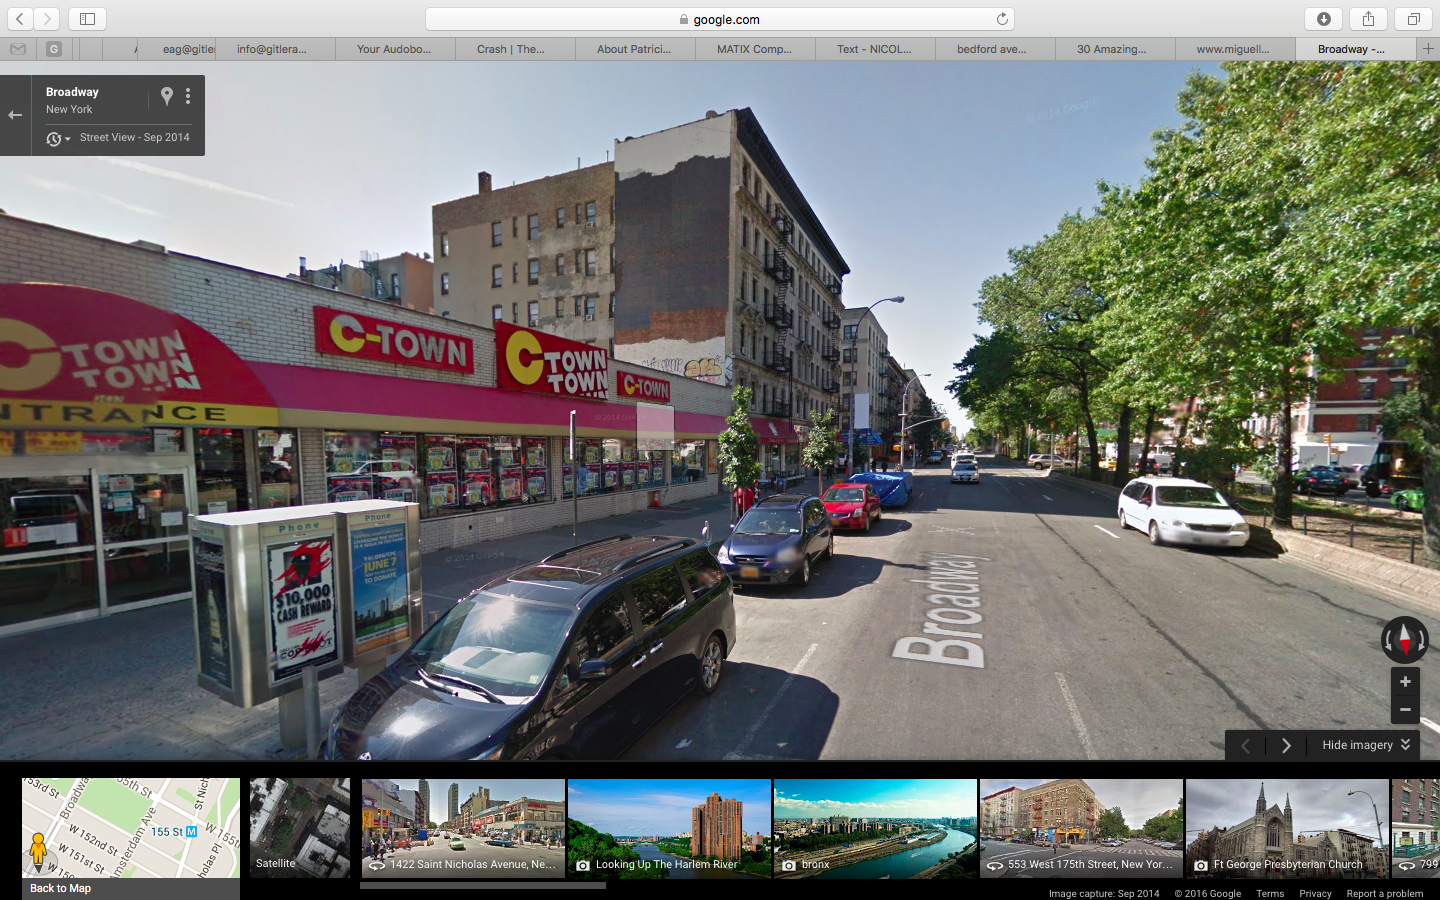 broadway - 149 and 150 2/4